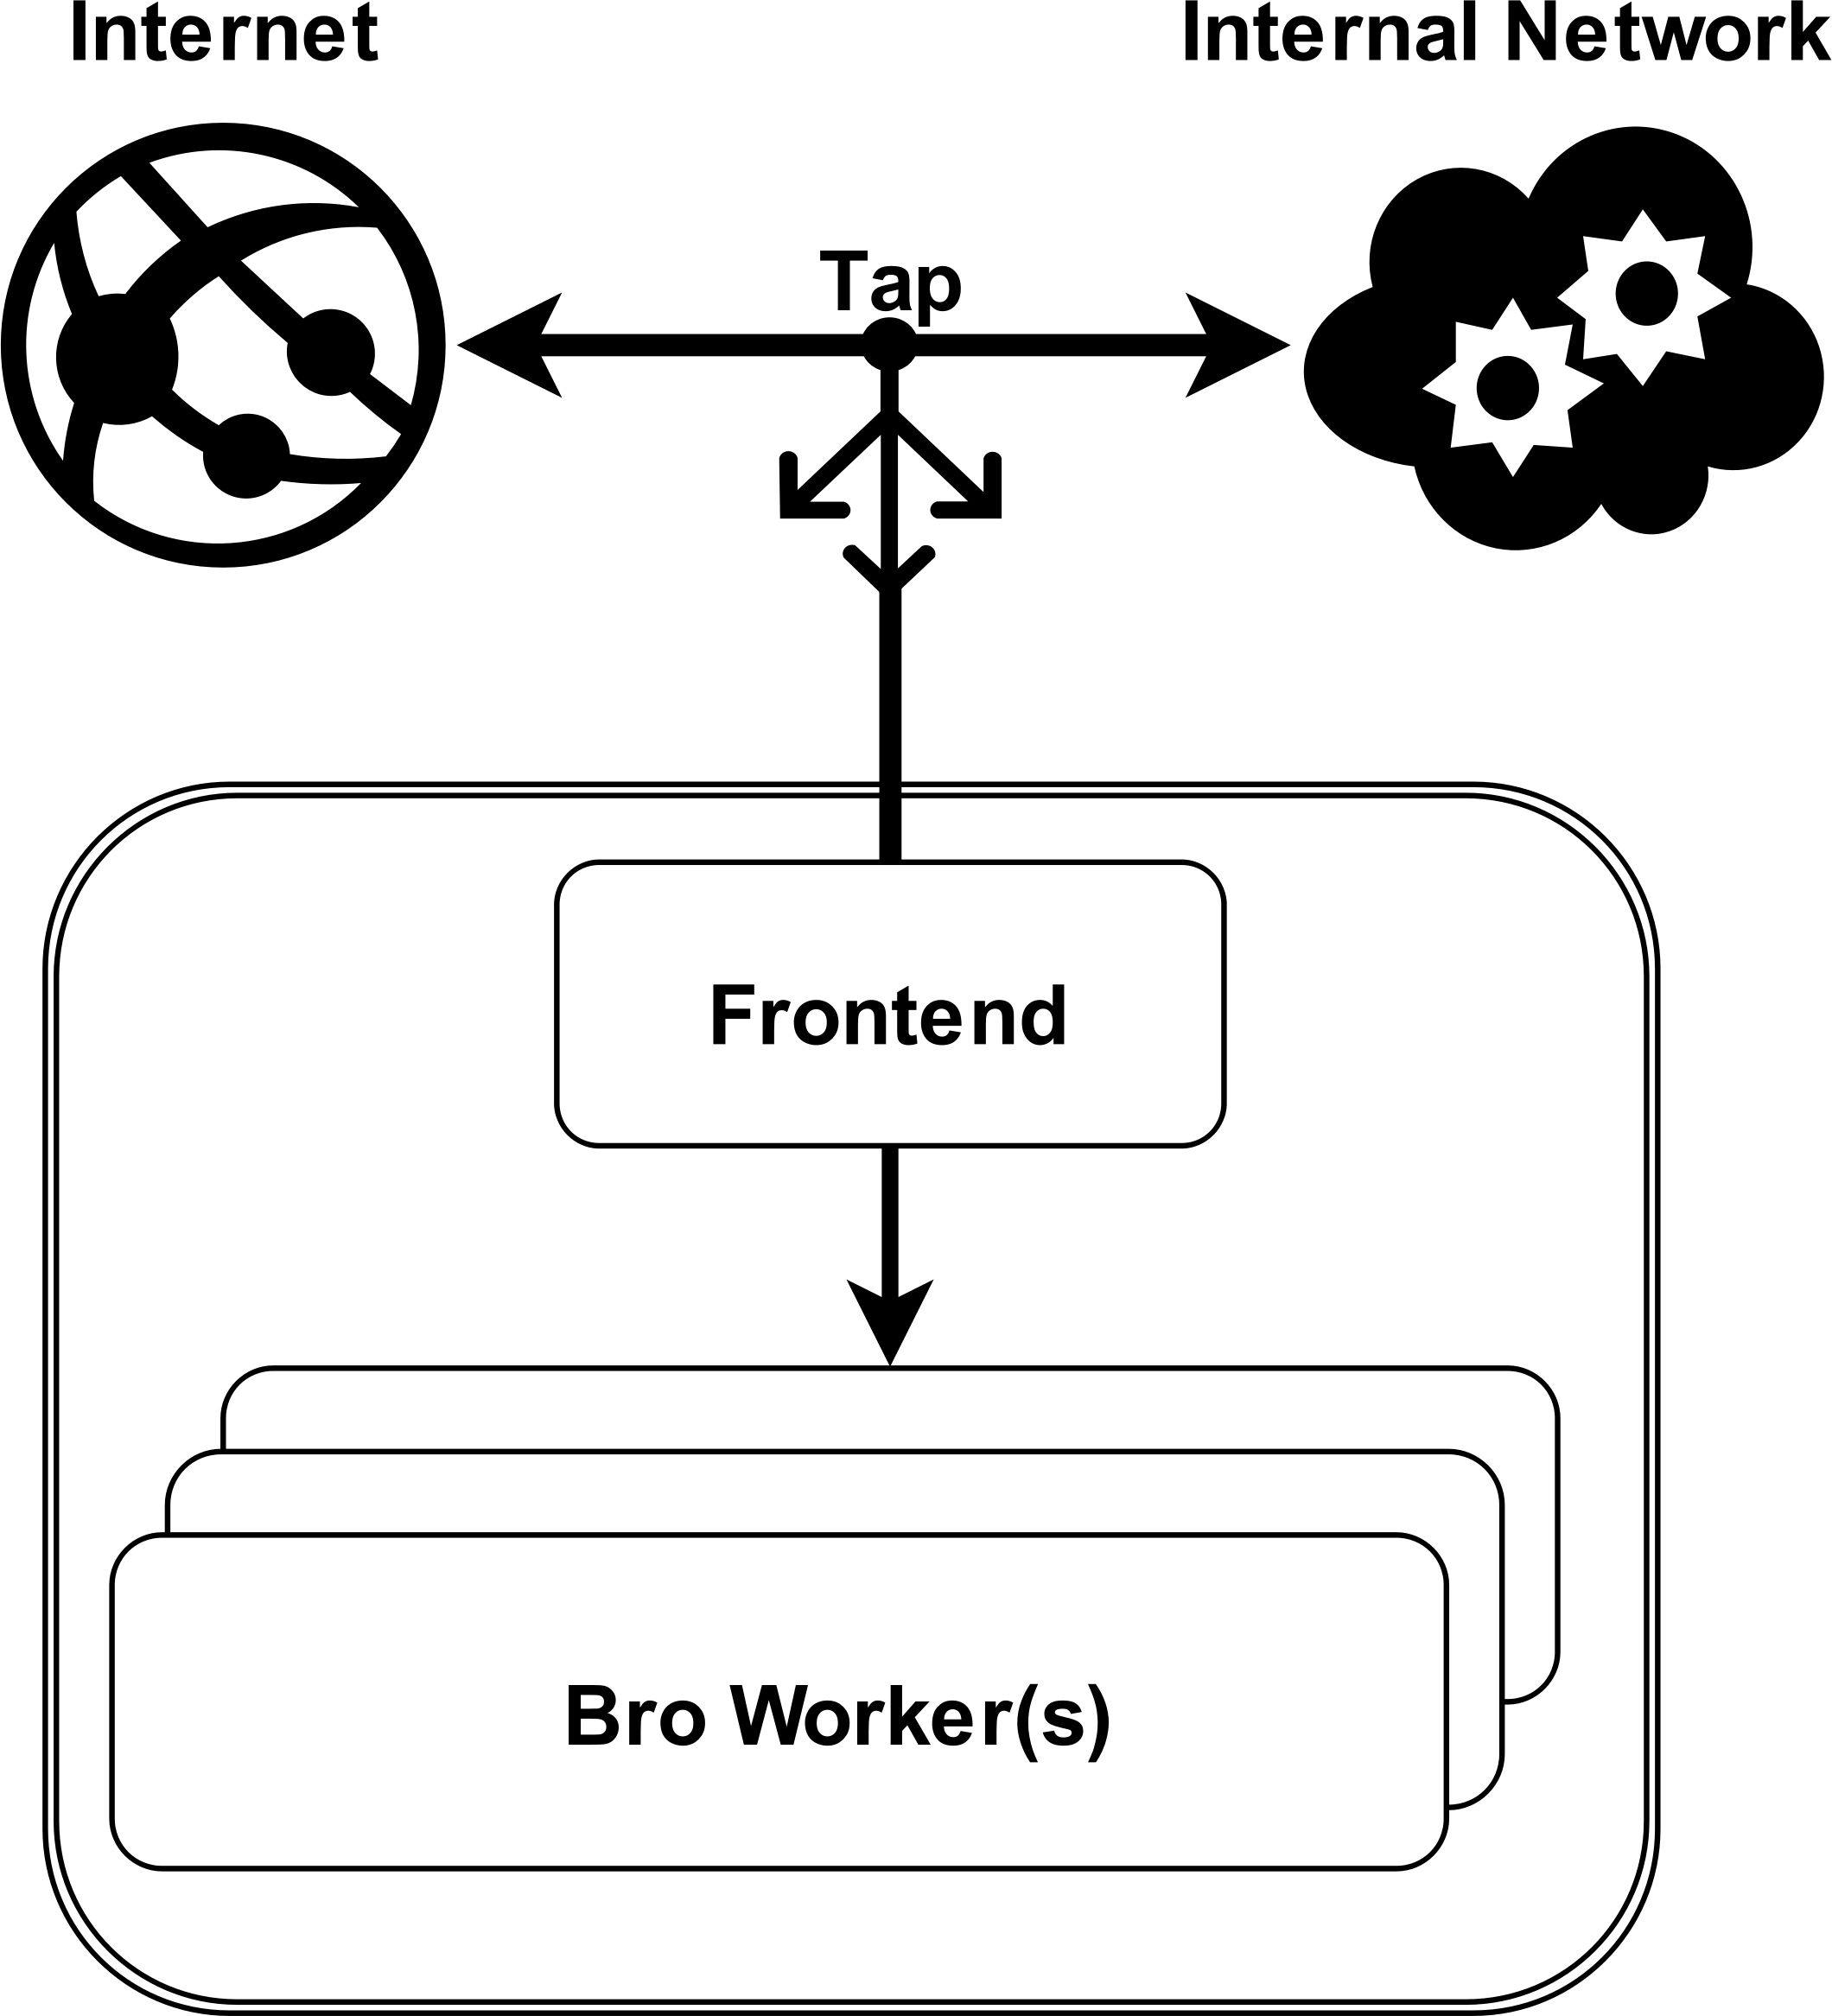 bro-overview graph by cset_paper